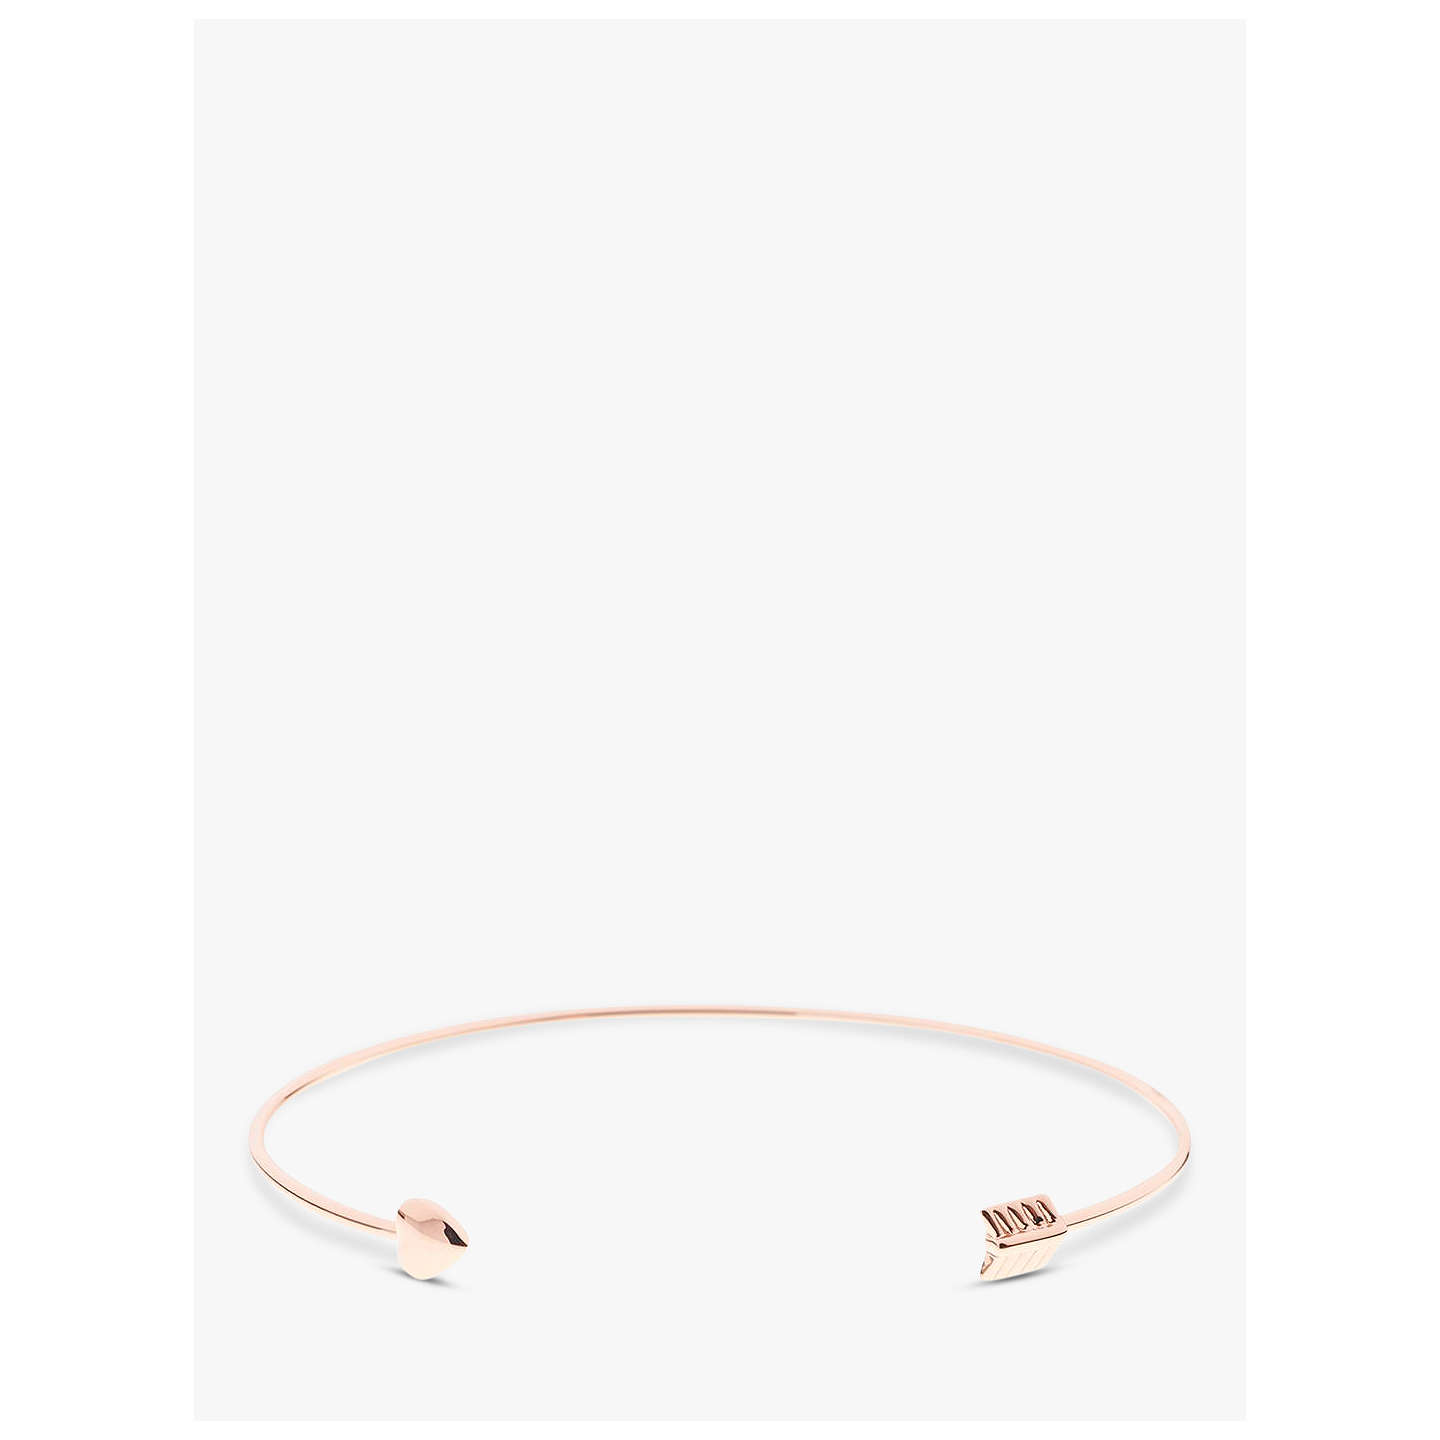 hinge goldclear jewelry normal product in lyst bracelet rebecca metallic minkoff arrow gallery gold